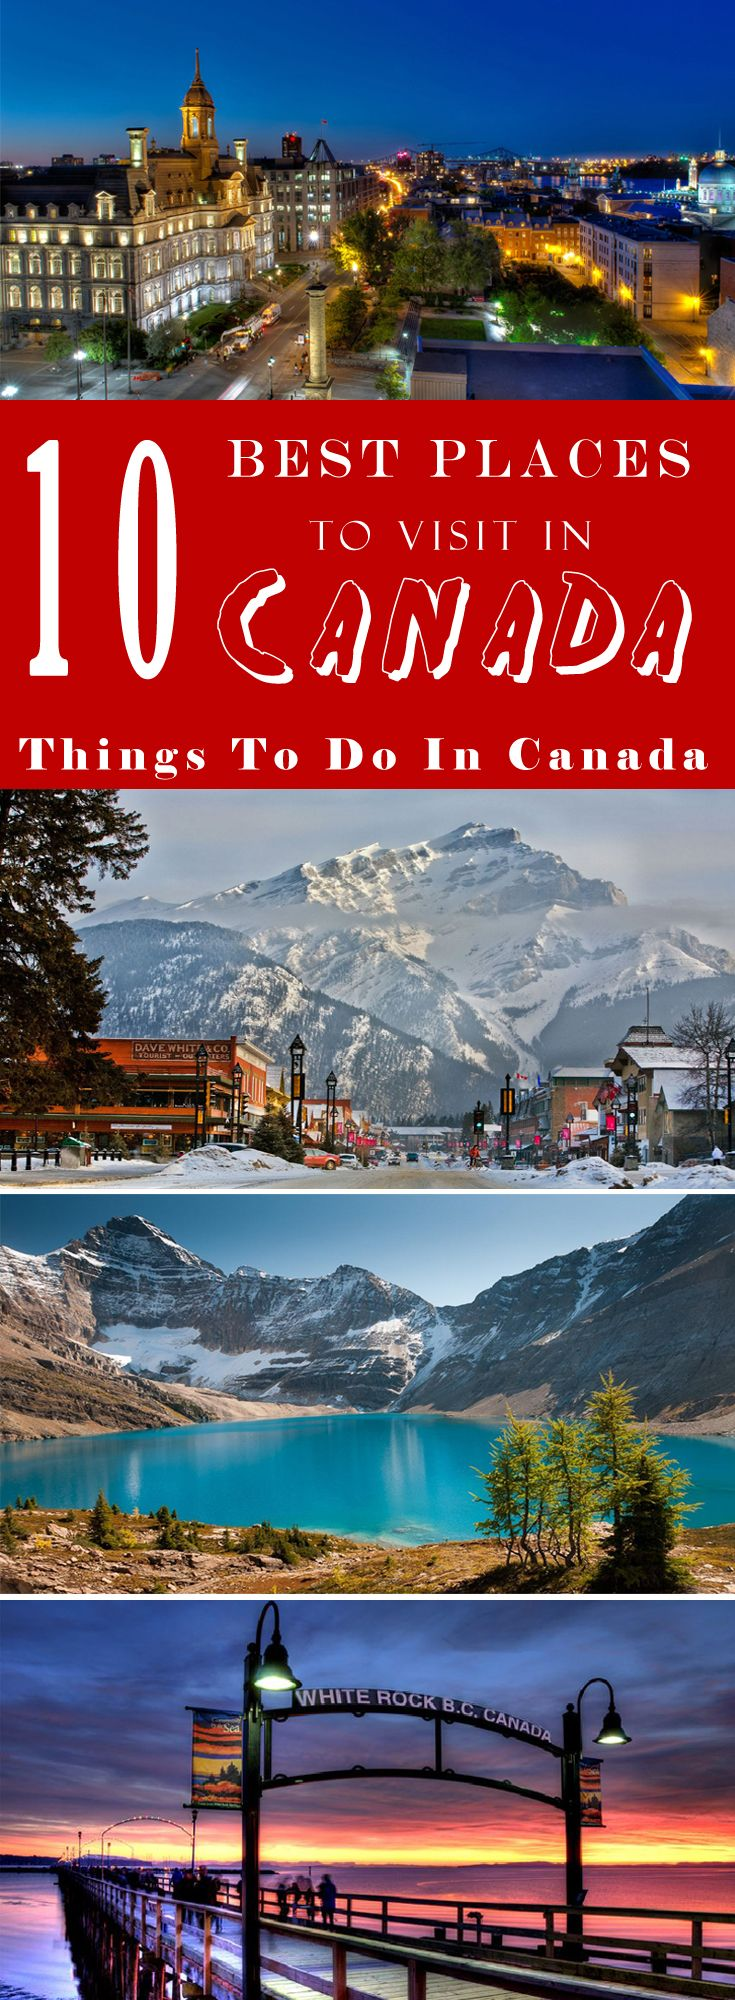 A Land Of Breathtaking Sights Whistler Blackcomb Banff National Park Lake Ontario Vancouver Aquarium Cool Places To Visit Places To Visit Incredible Places